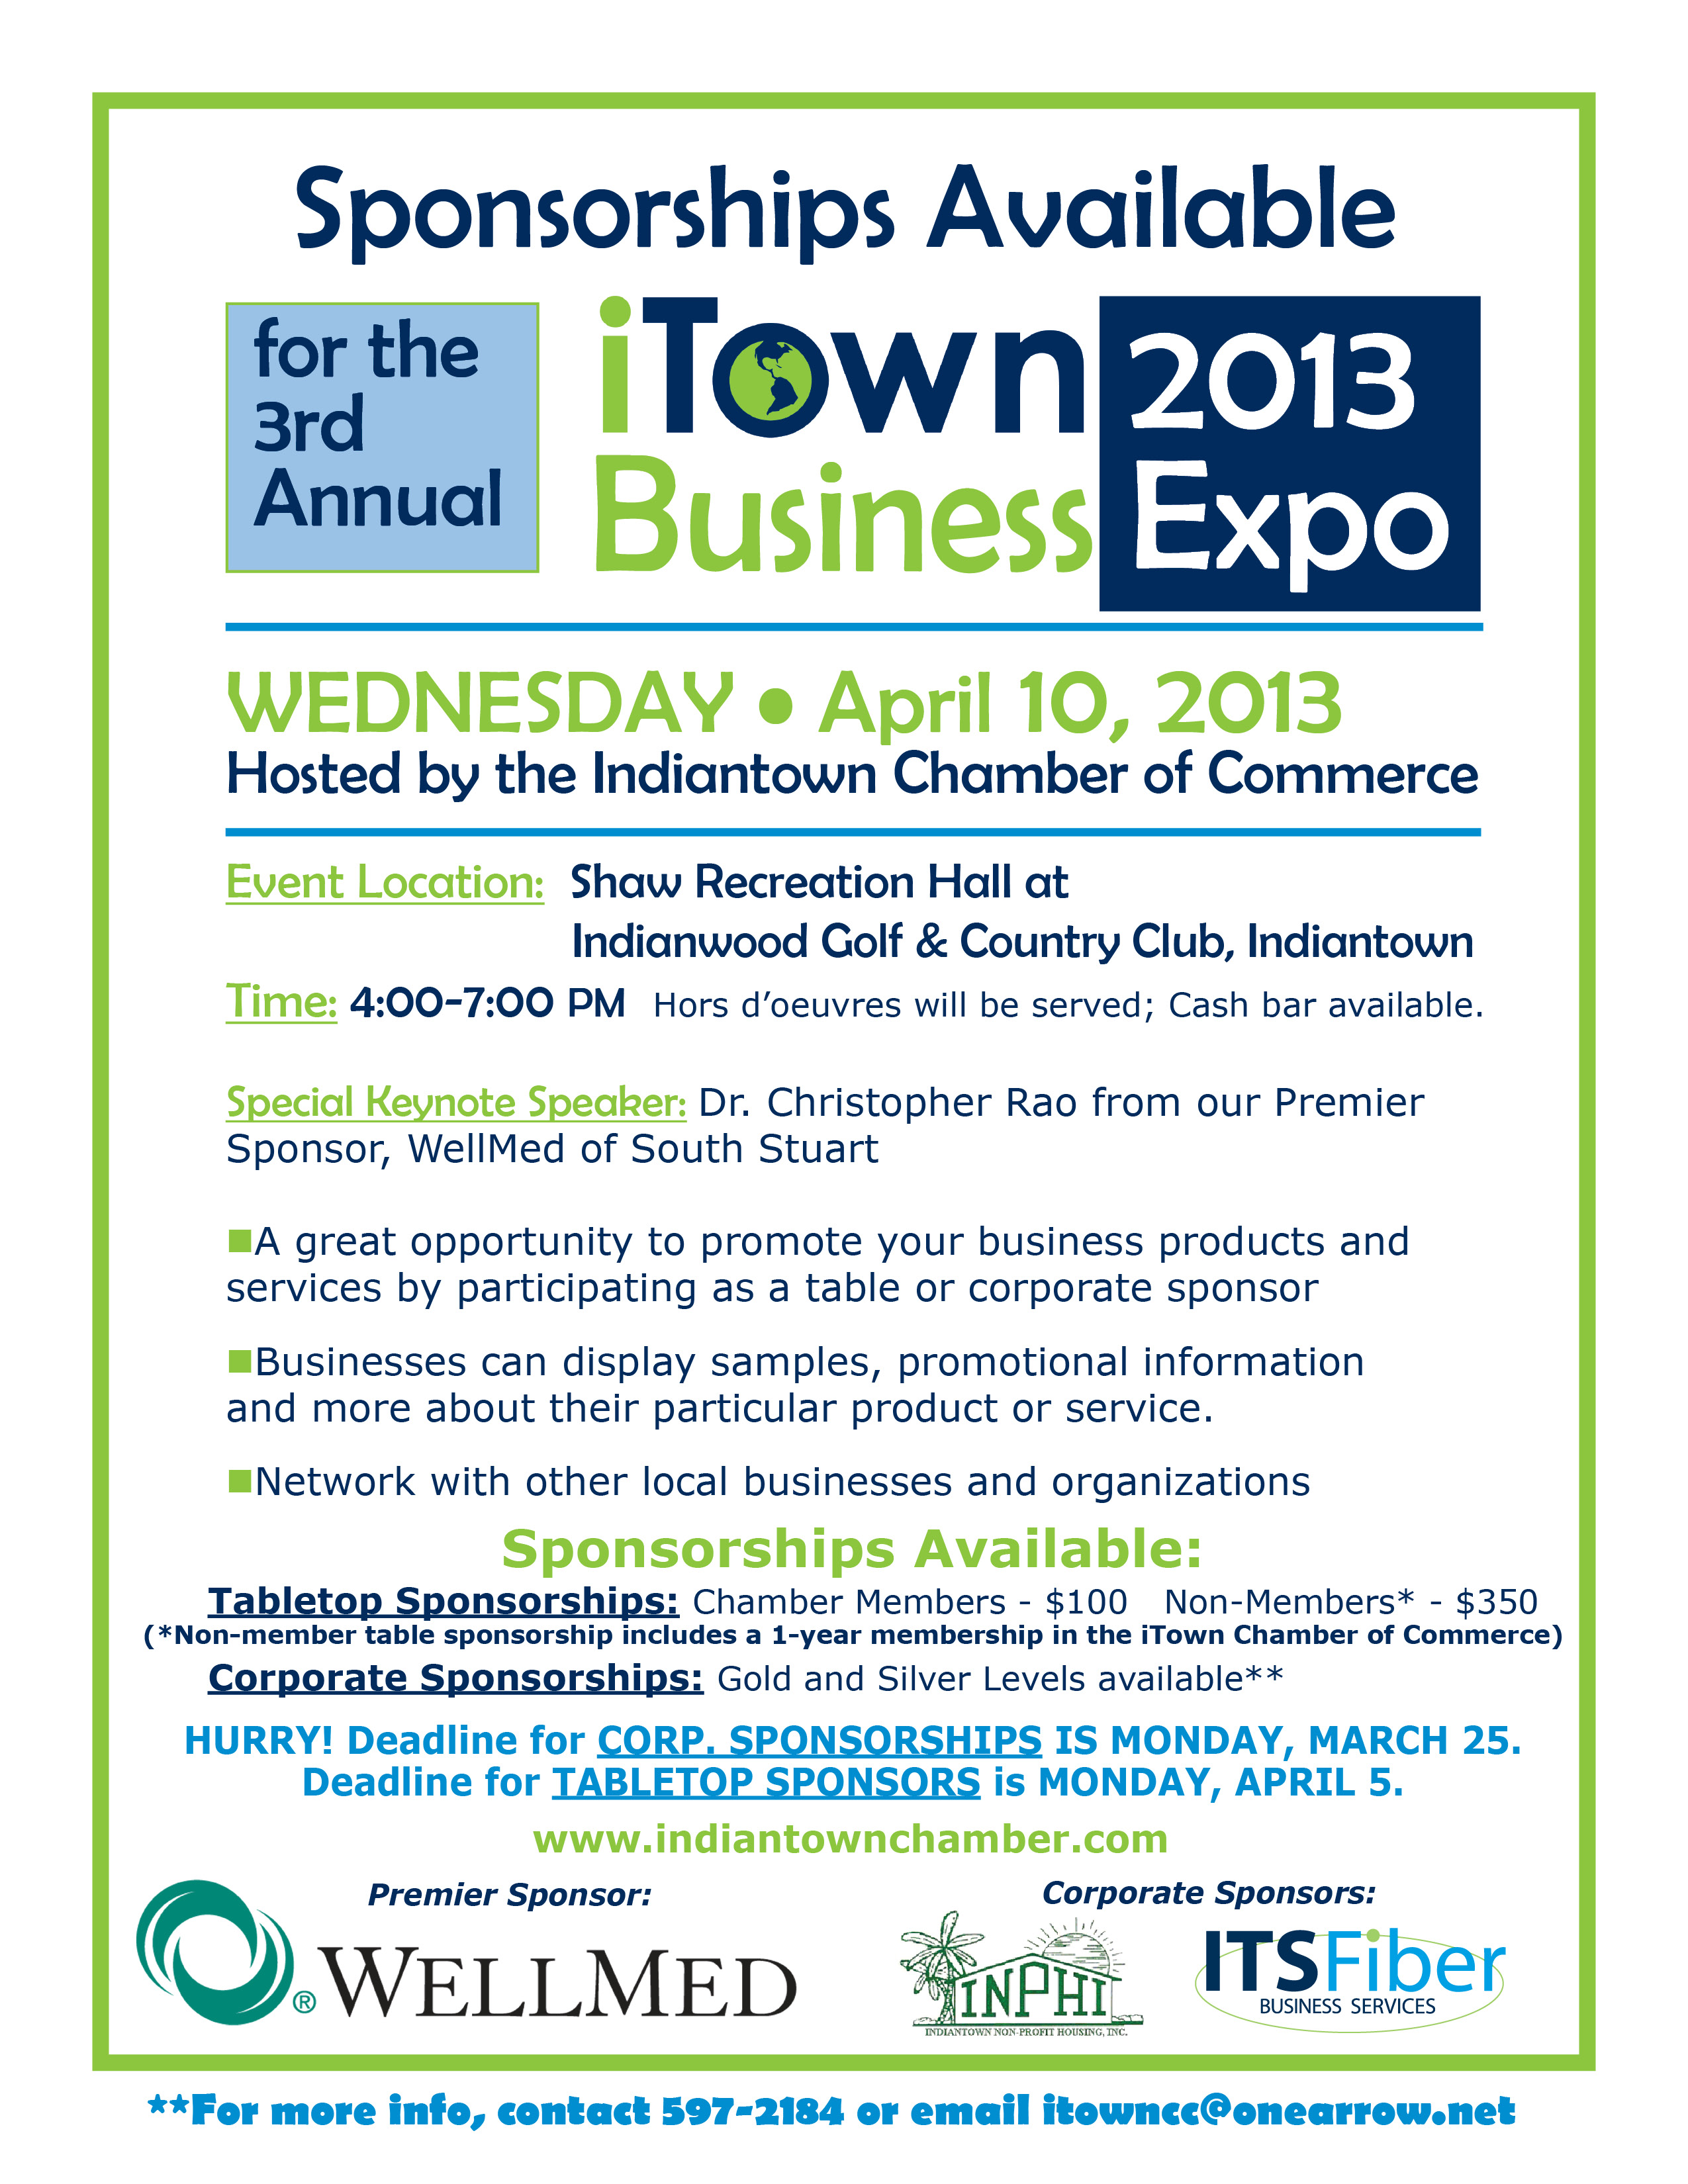 Indiantown chamber of commerce 3rd annual business expo for Sponsorship brochure template